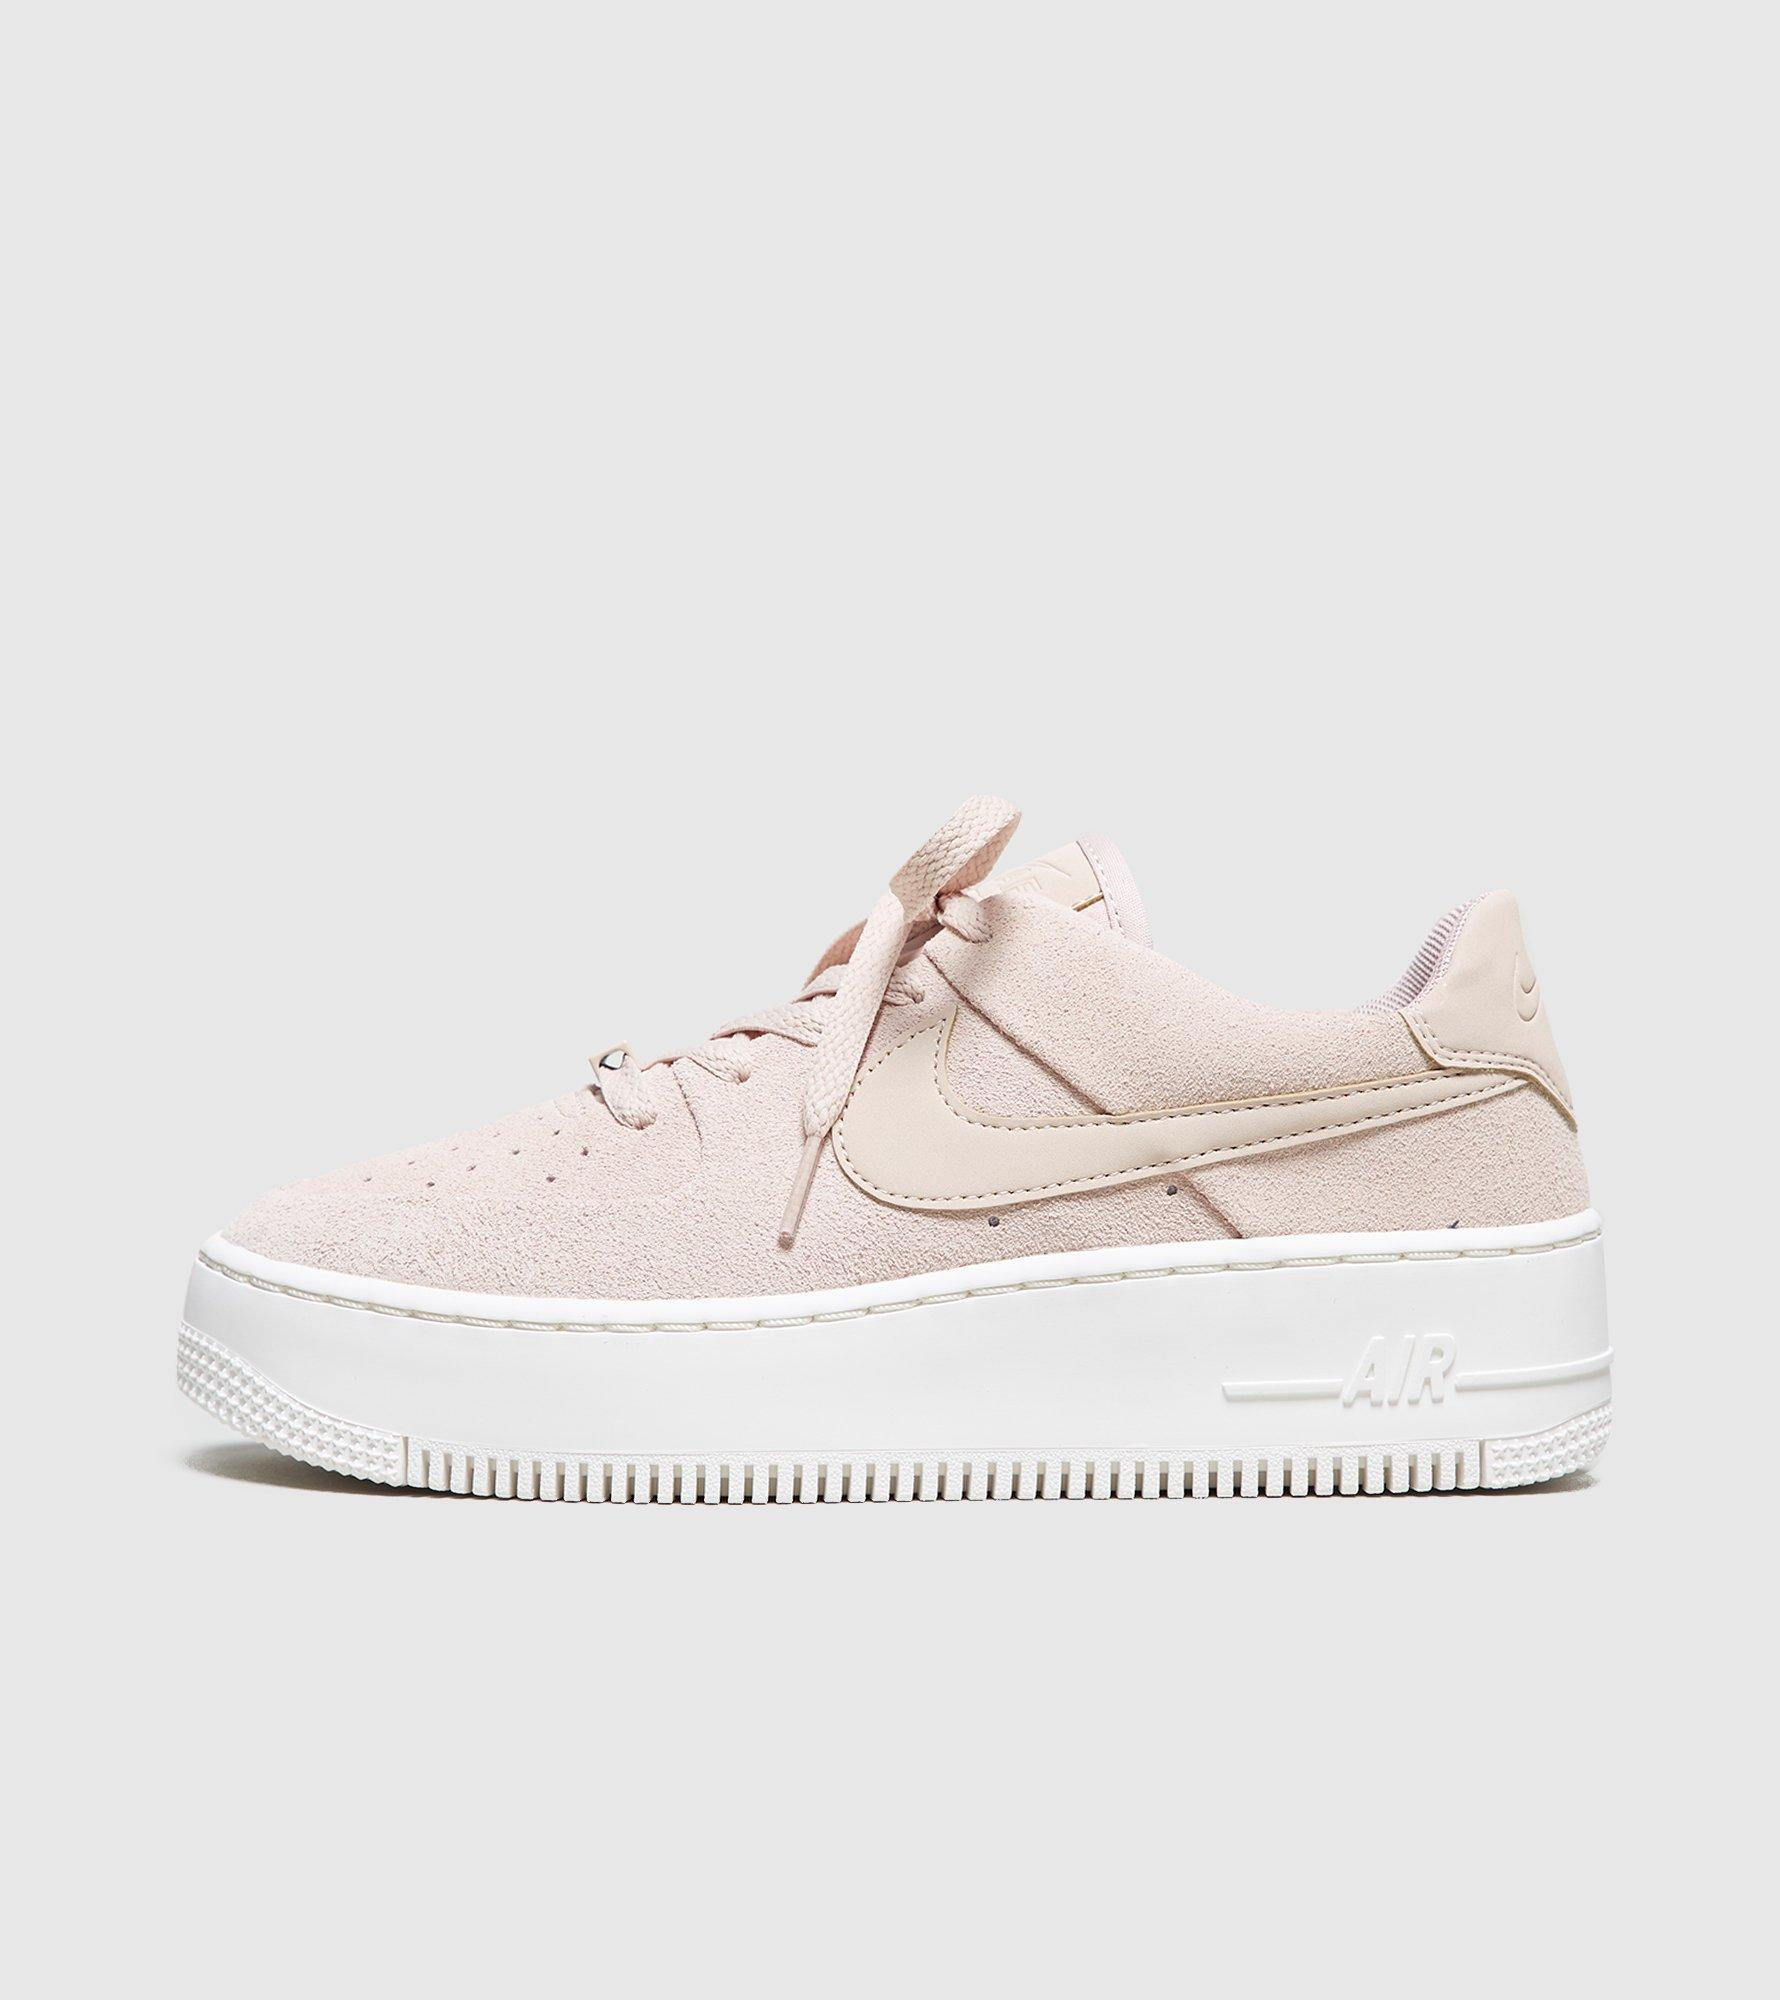 fbdfb7d69742 Lyst - Nike Air Force 1 Sage Low Women s in Natural